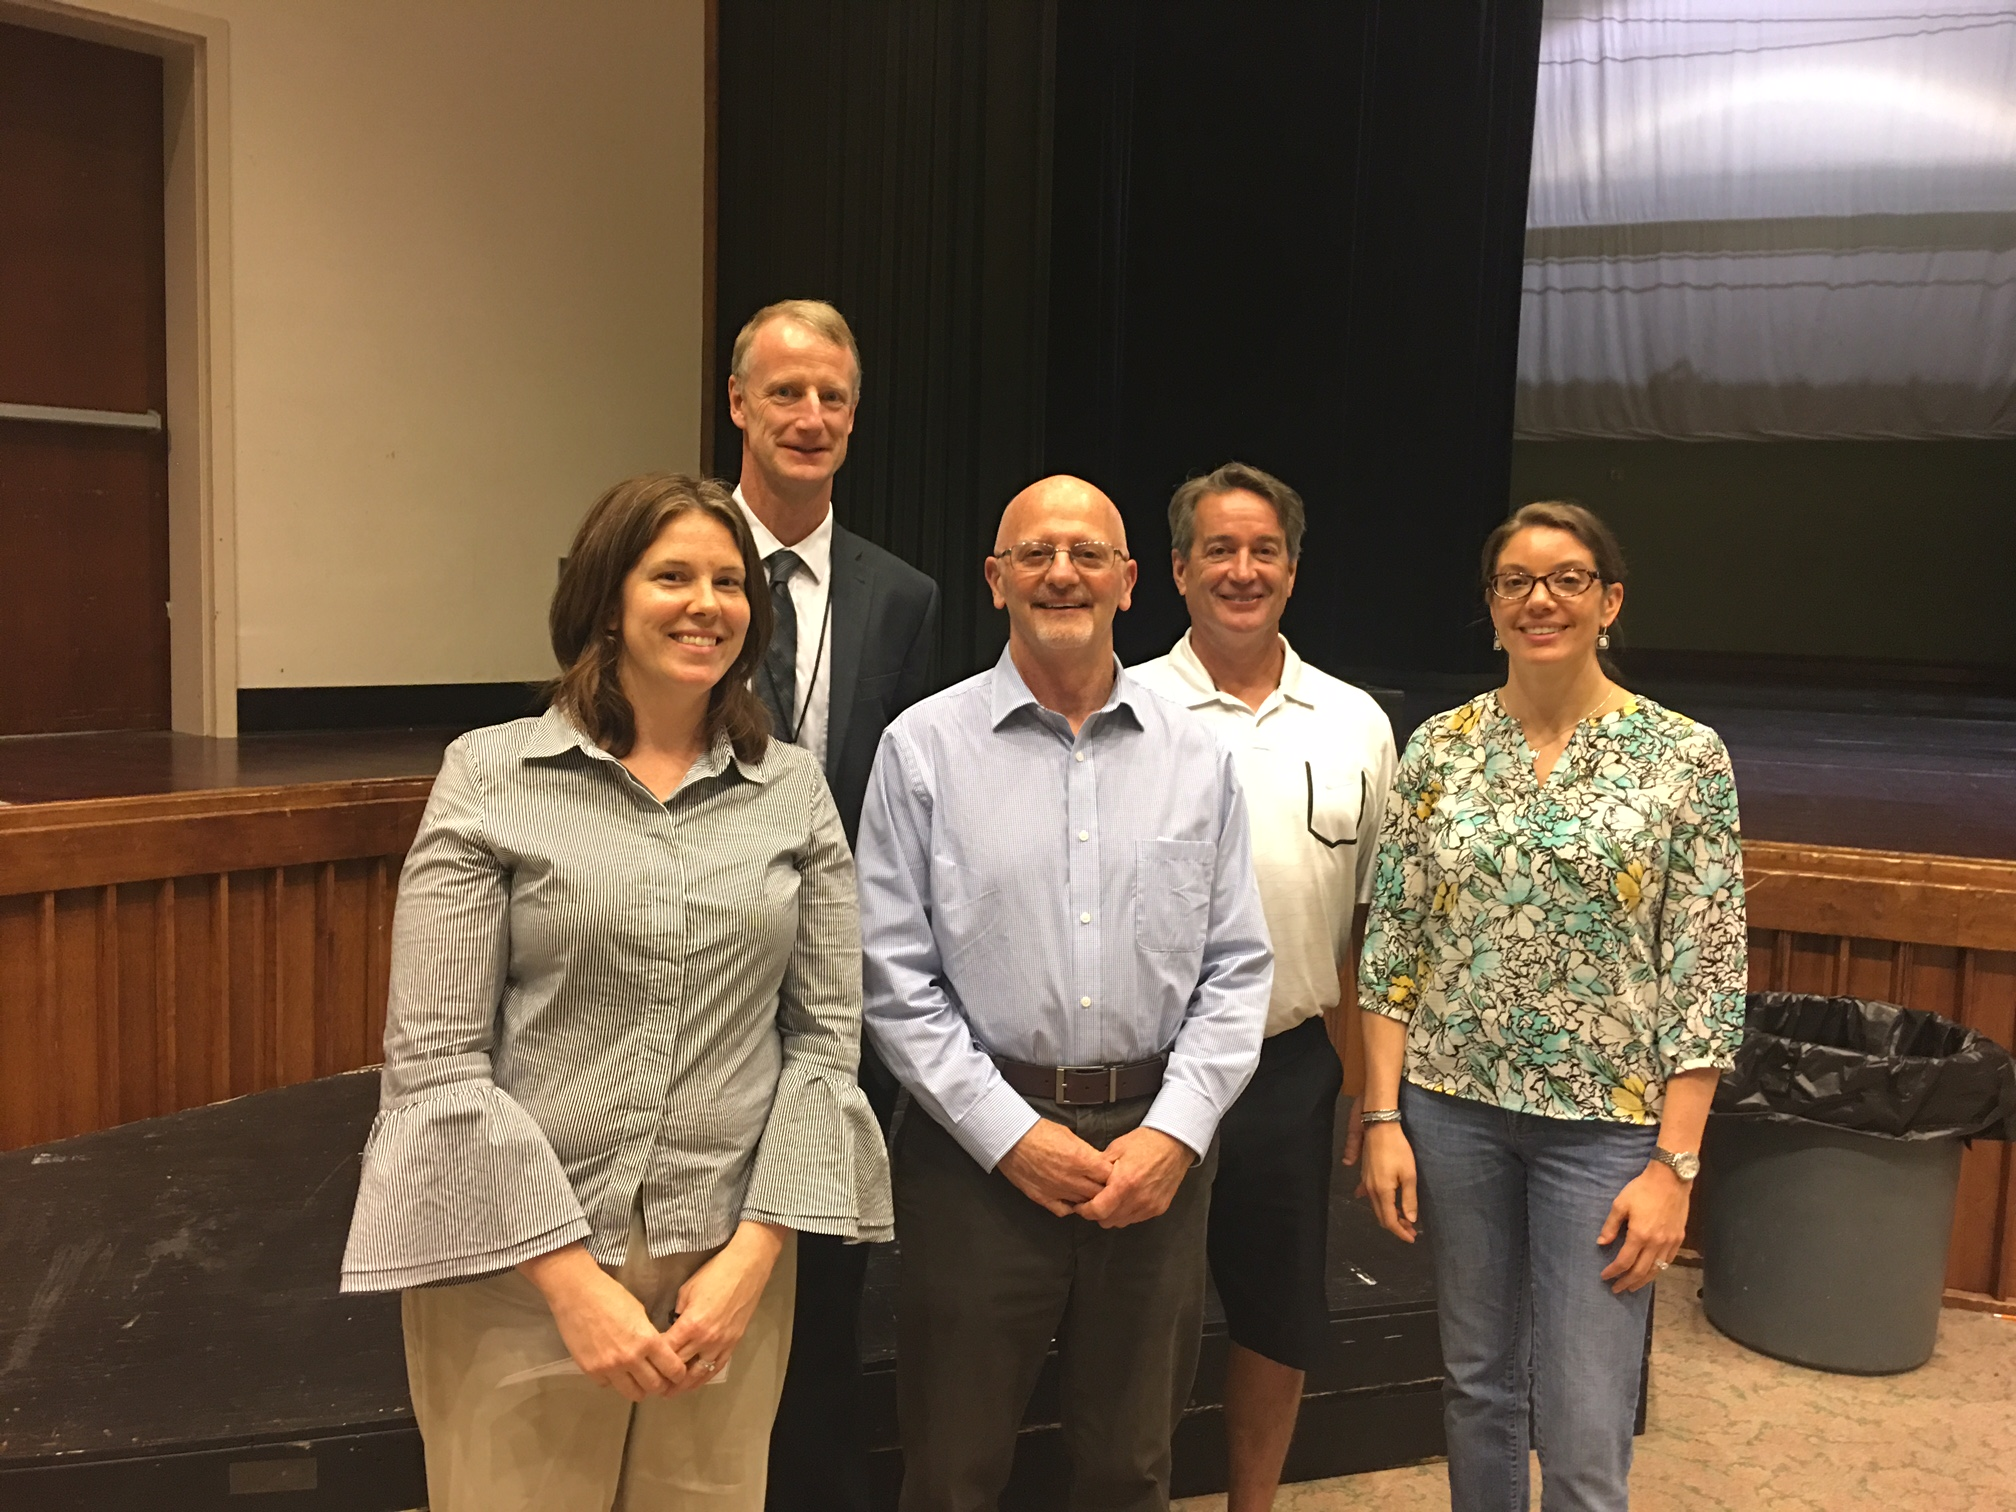 Pictured left to right: Amy Porier, Peter Driscoll, Arthur LeClair, with SEED board members Pat Duffy and Kelly Glennon